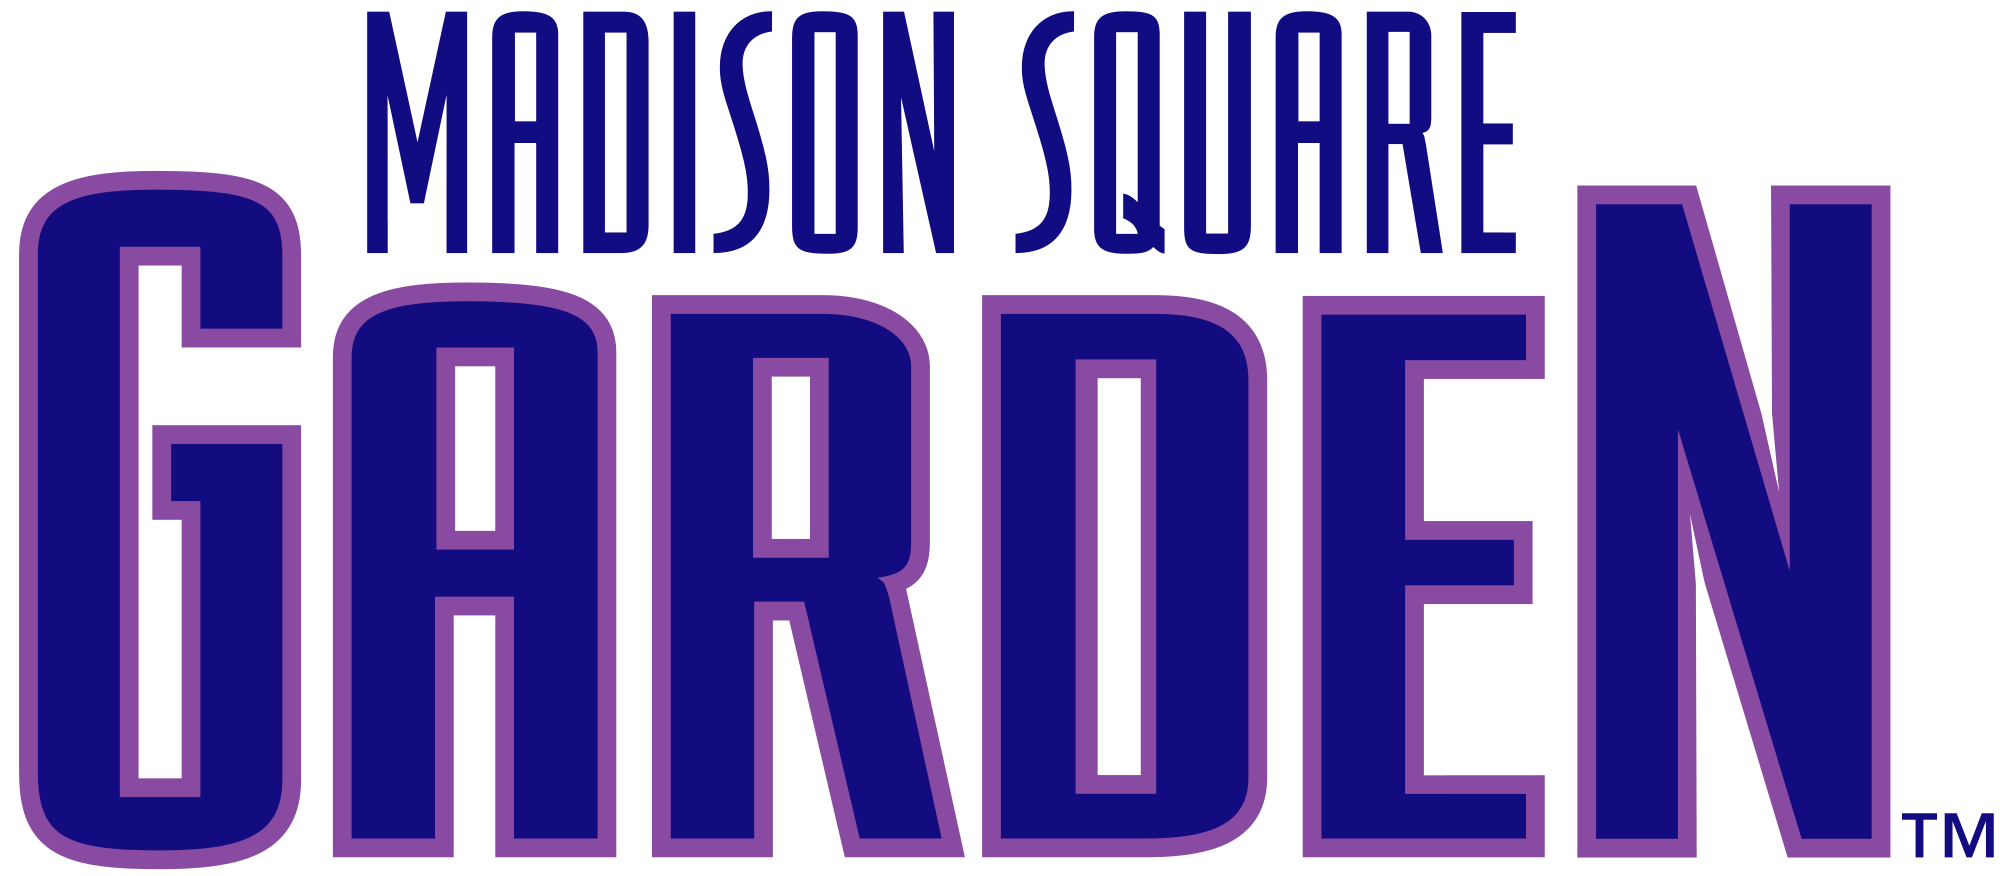 Madison square garden gagapedia fandom powered by wikia - Where is madison square garden located ...